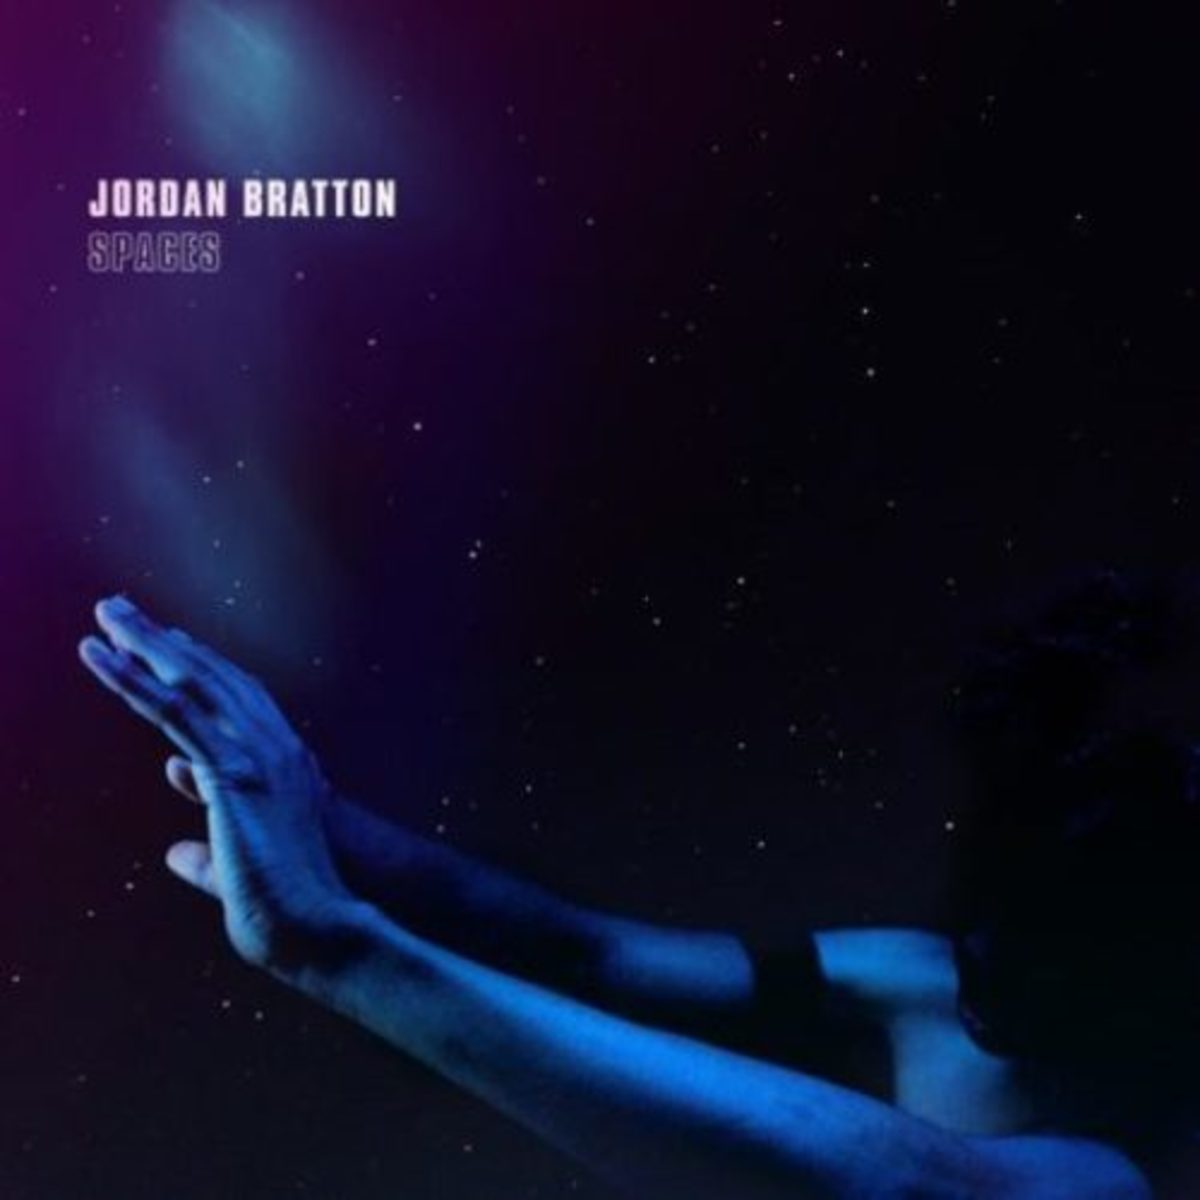 jordan-bratton-spaces.jpg